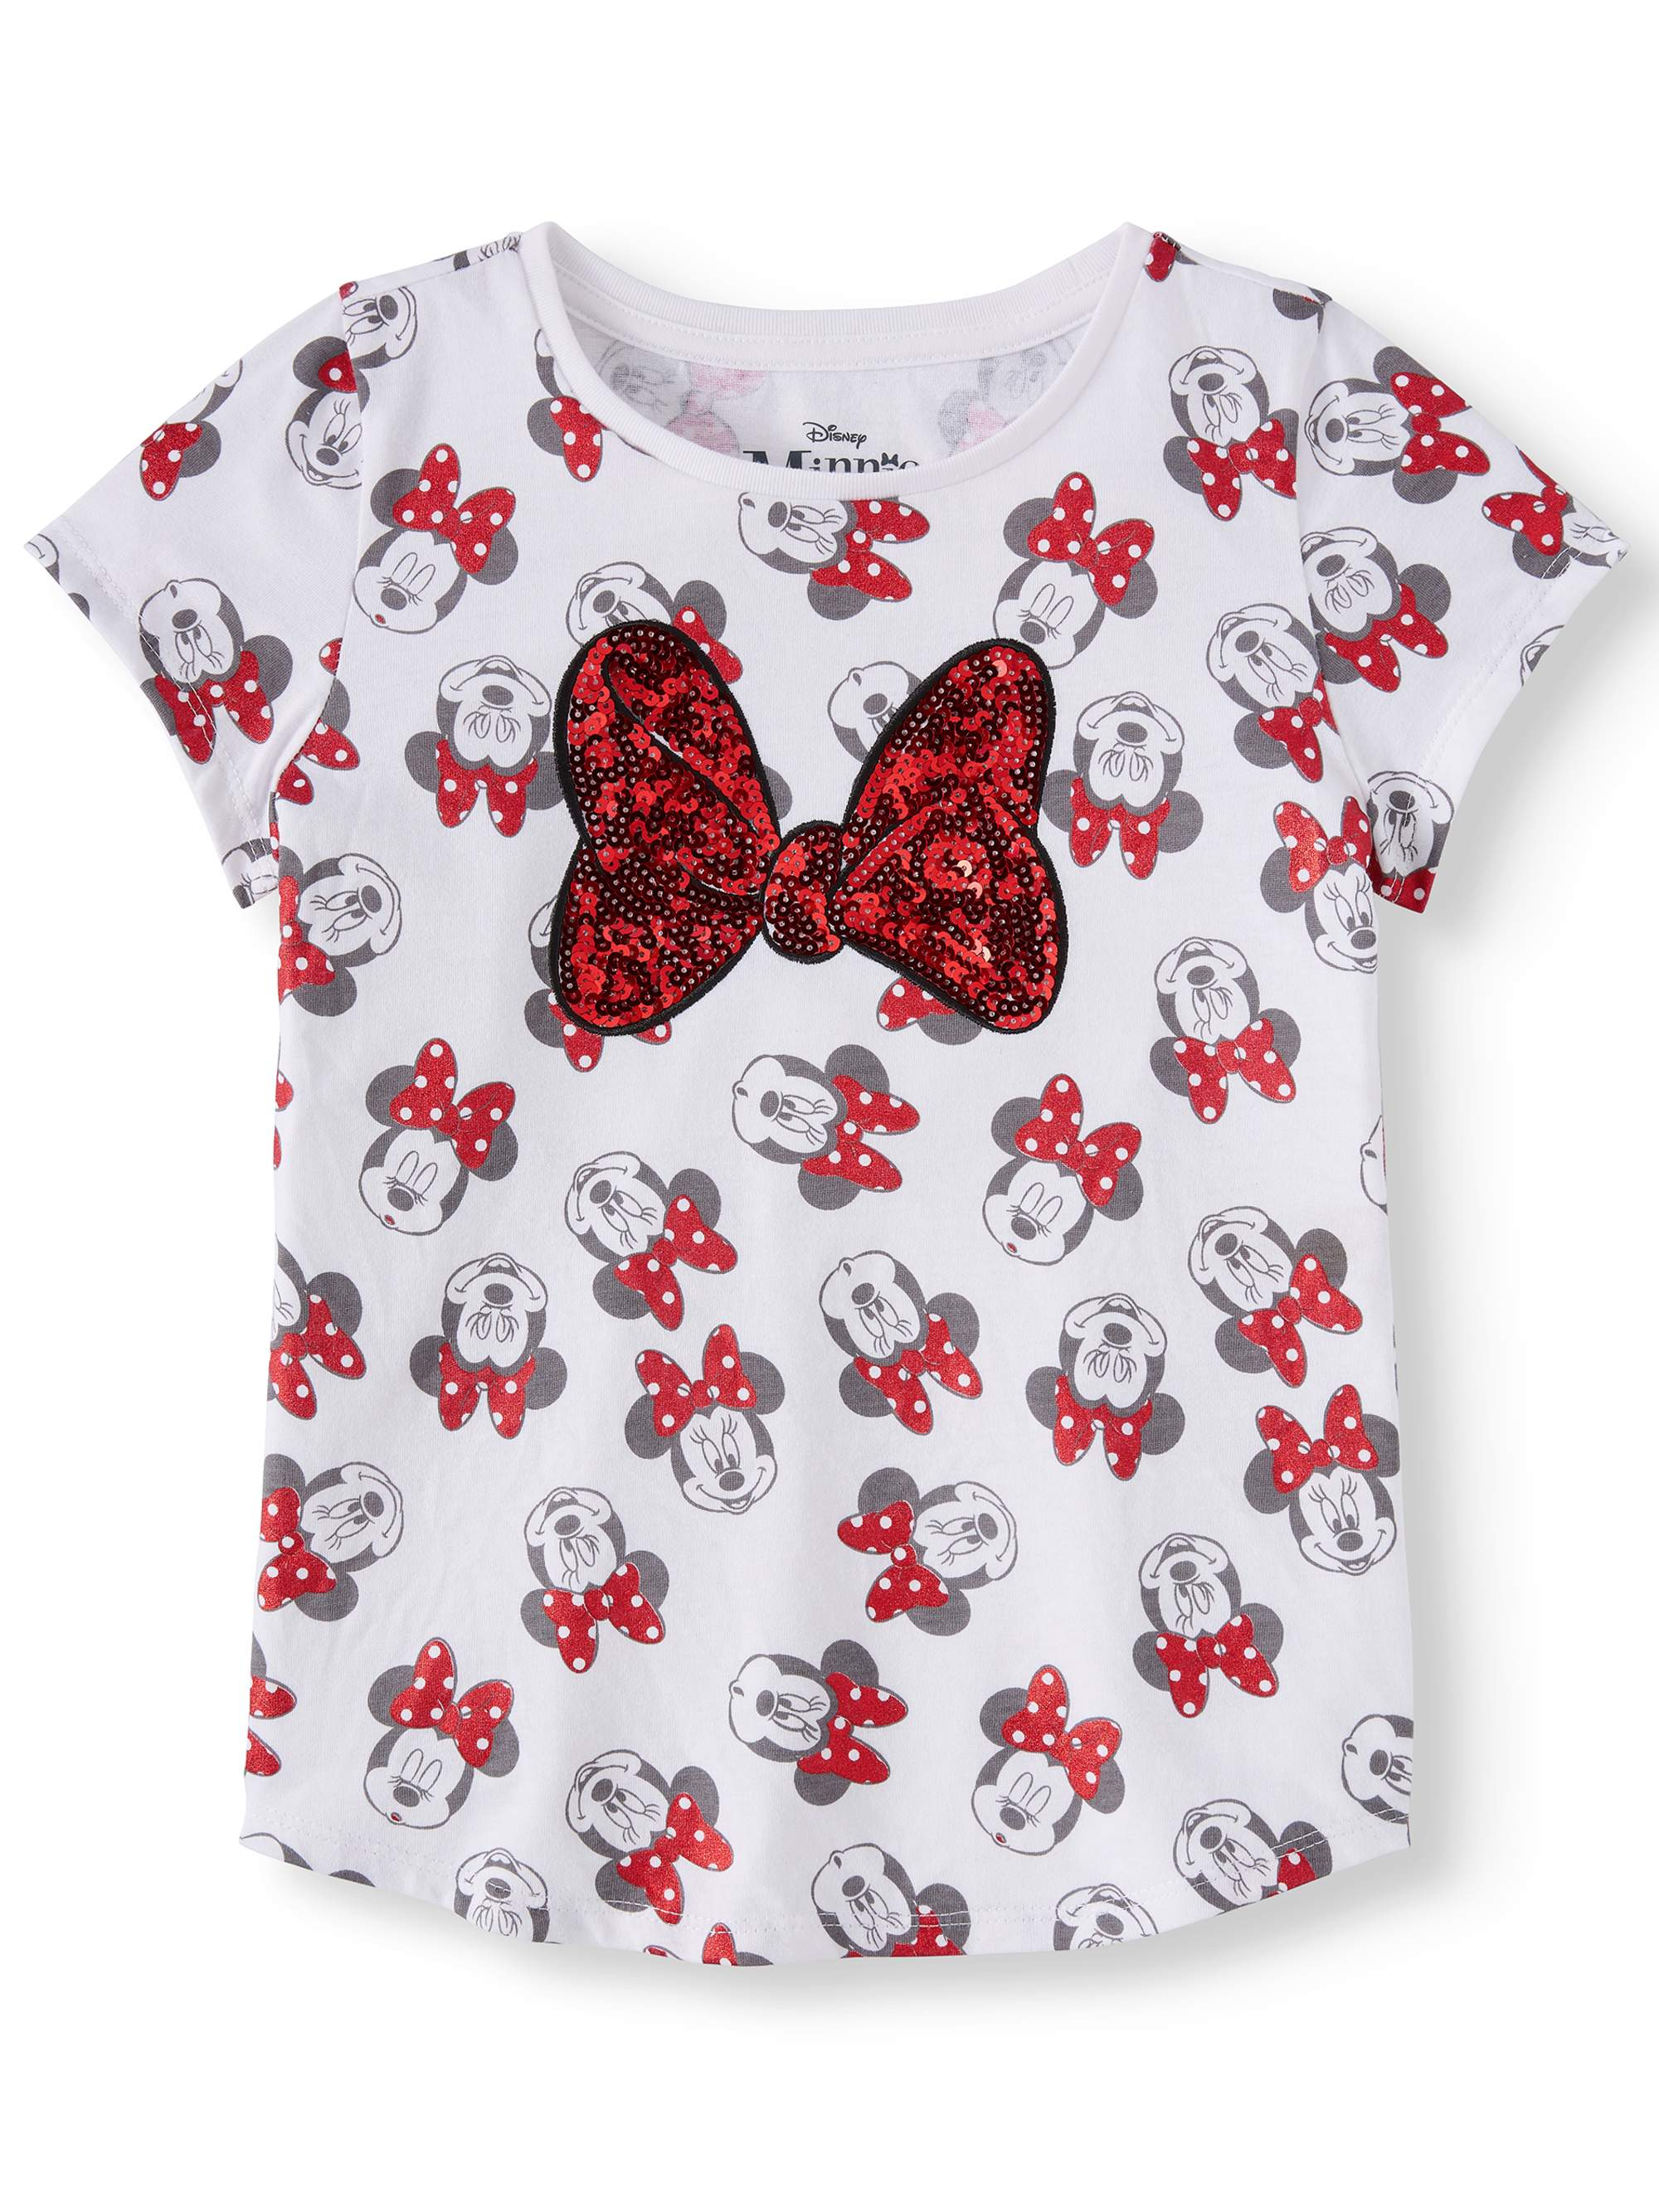 All-Over Minnie Bow Graphic T-Shirt (Little Girls & Big Girls)